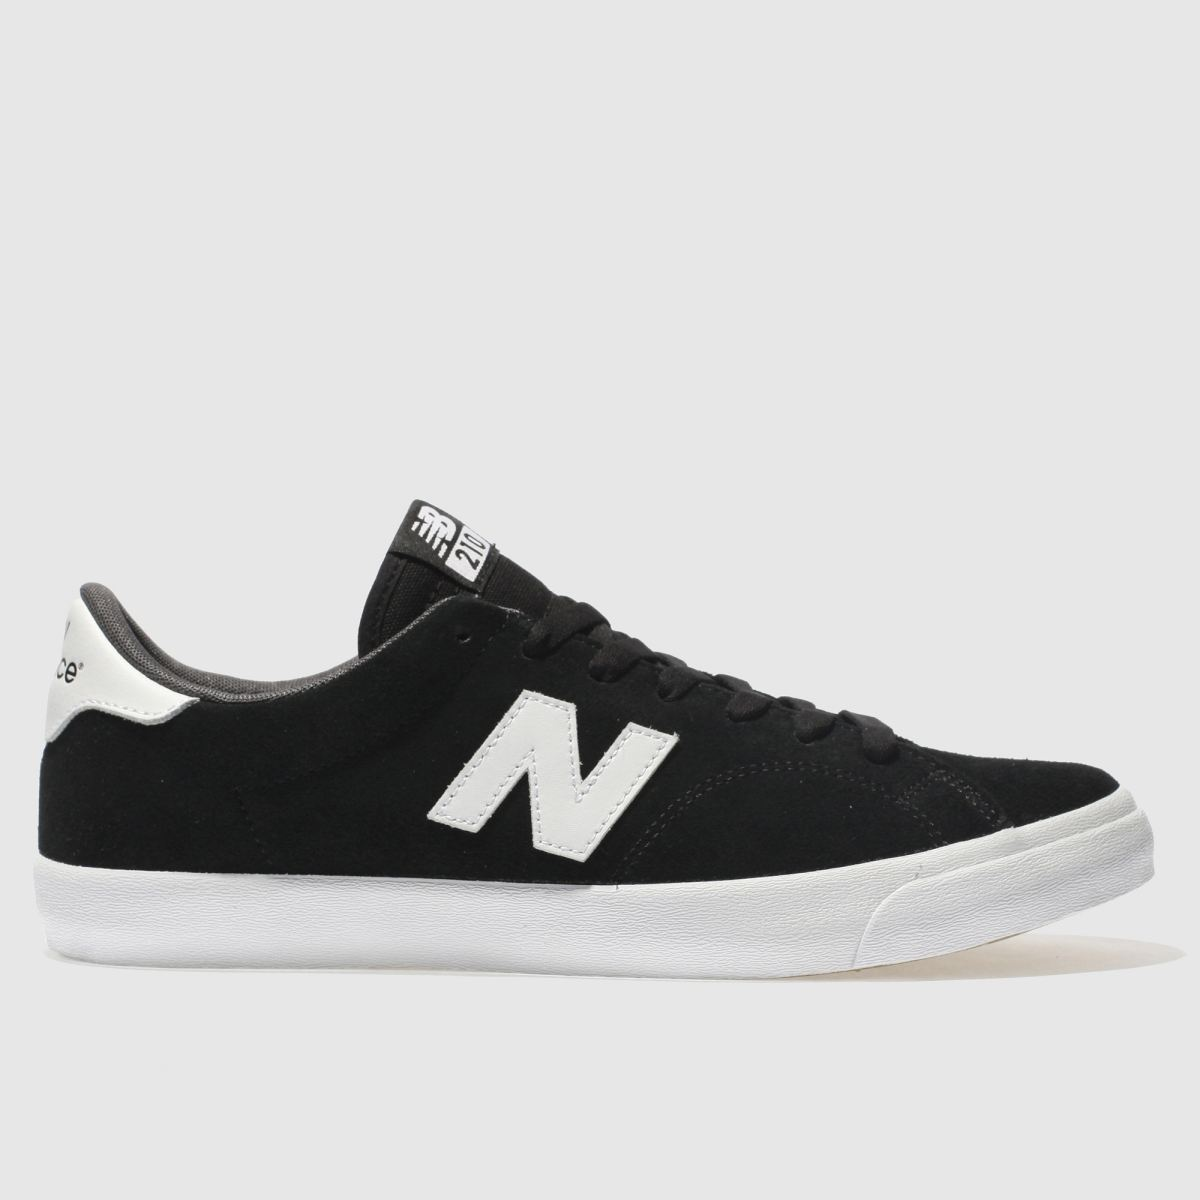 New Balance Black & White All Coasts 210 Trainers